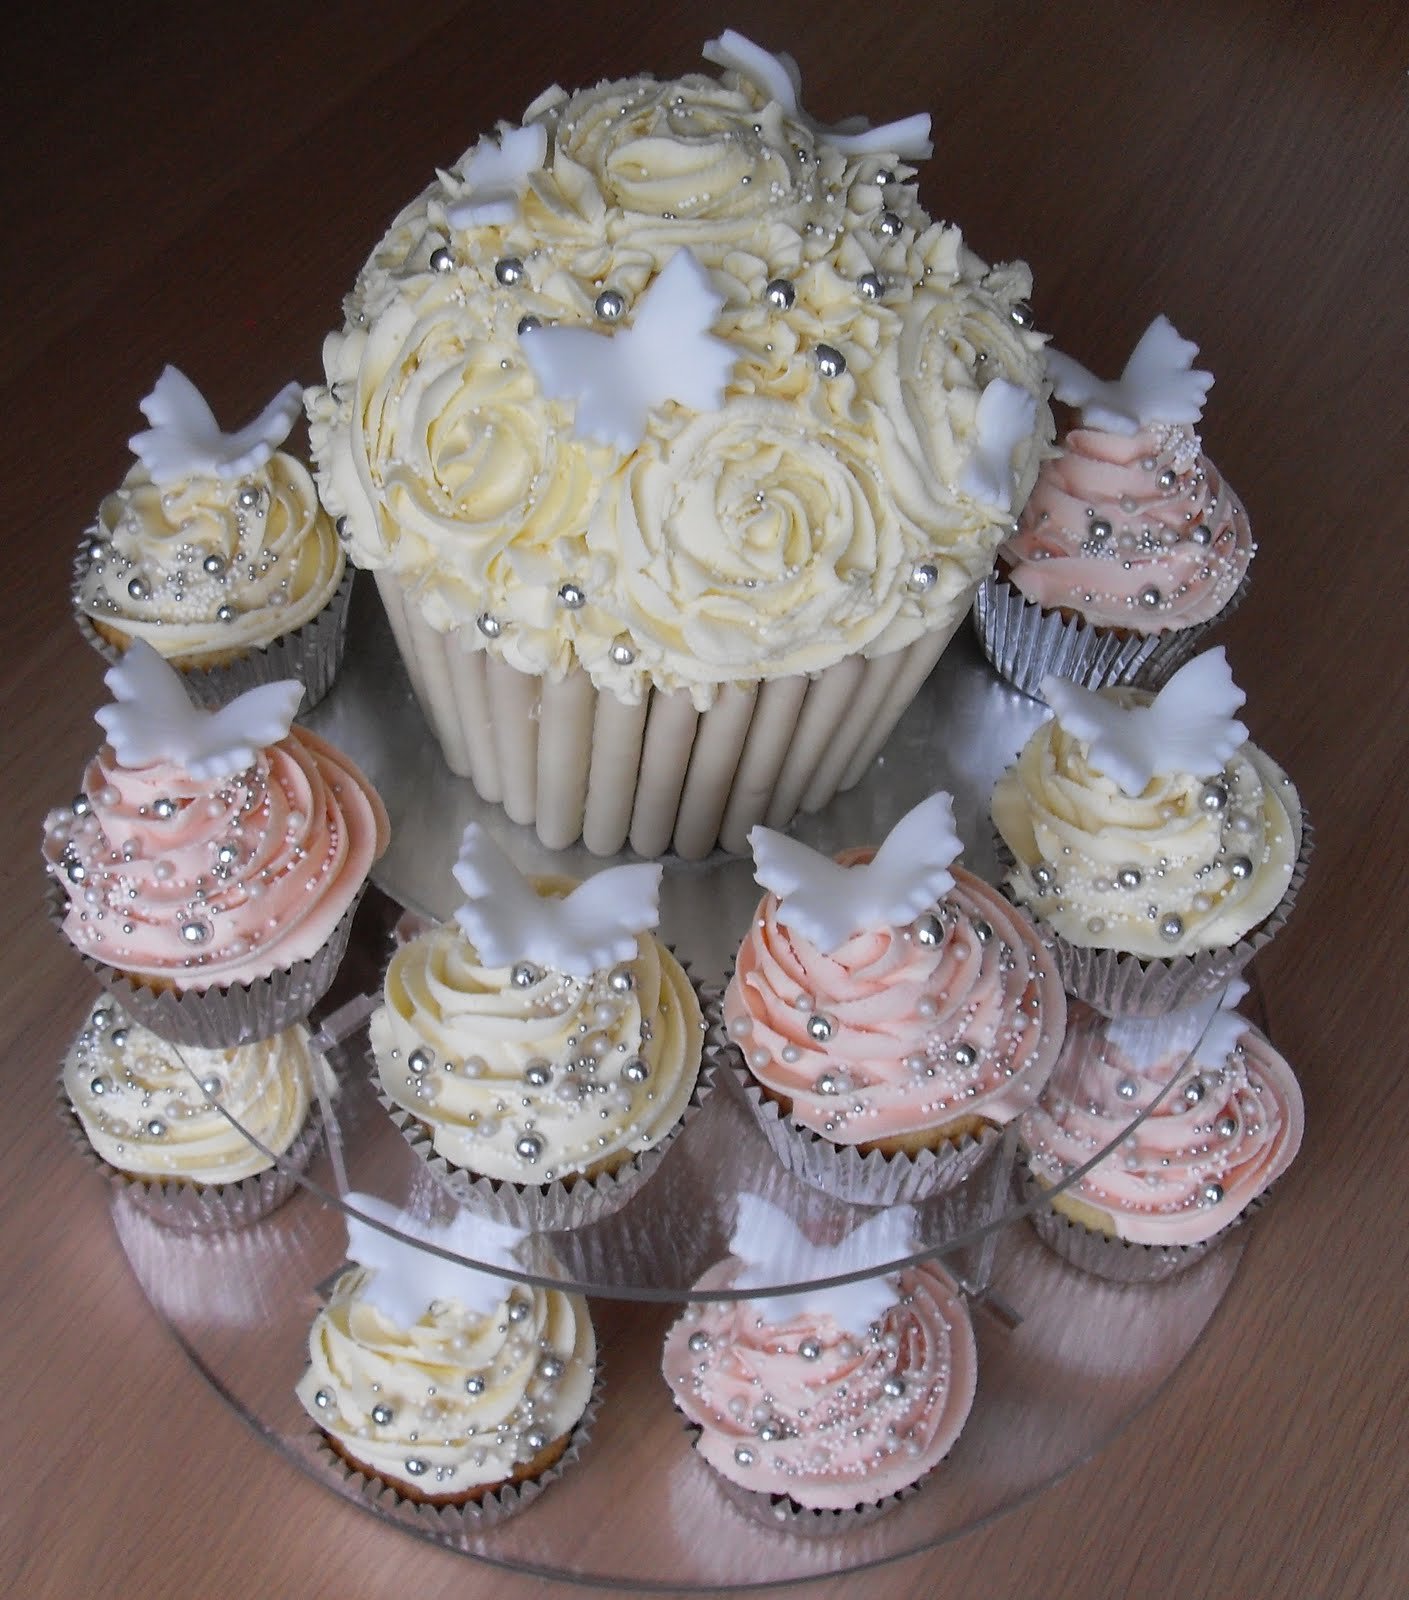 Cupcake Ideas For Wedding: Vanilla Cupcakes With Vanilla